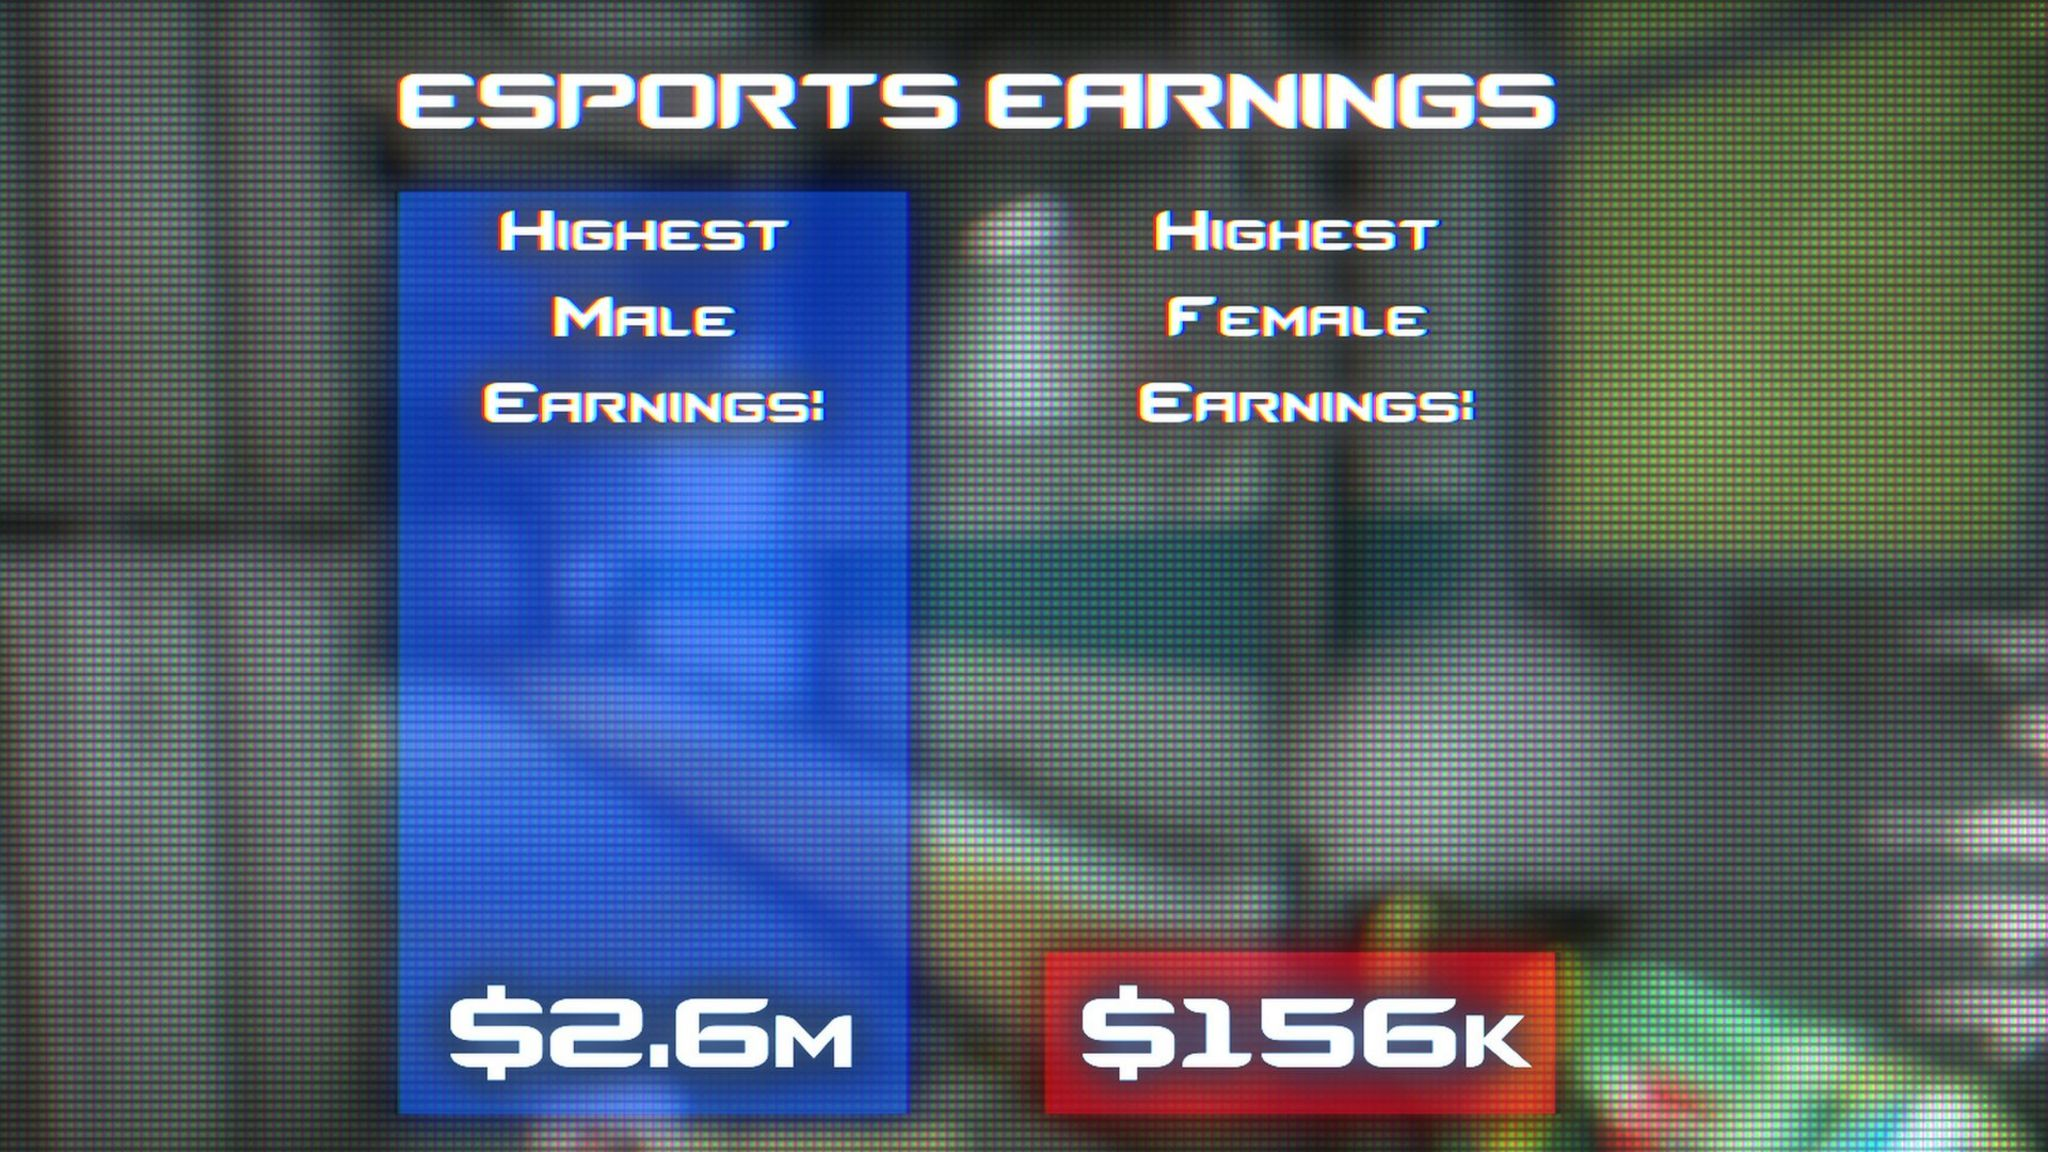 The difference in earnings for male and female players